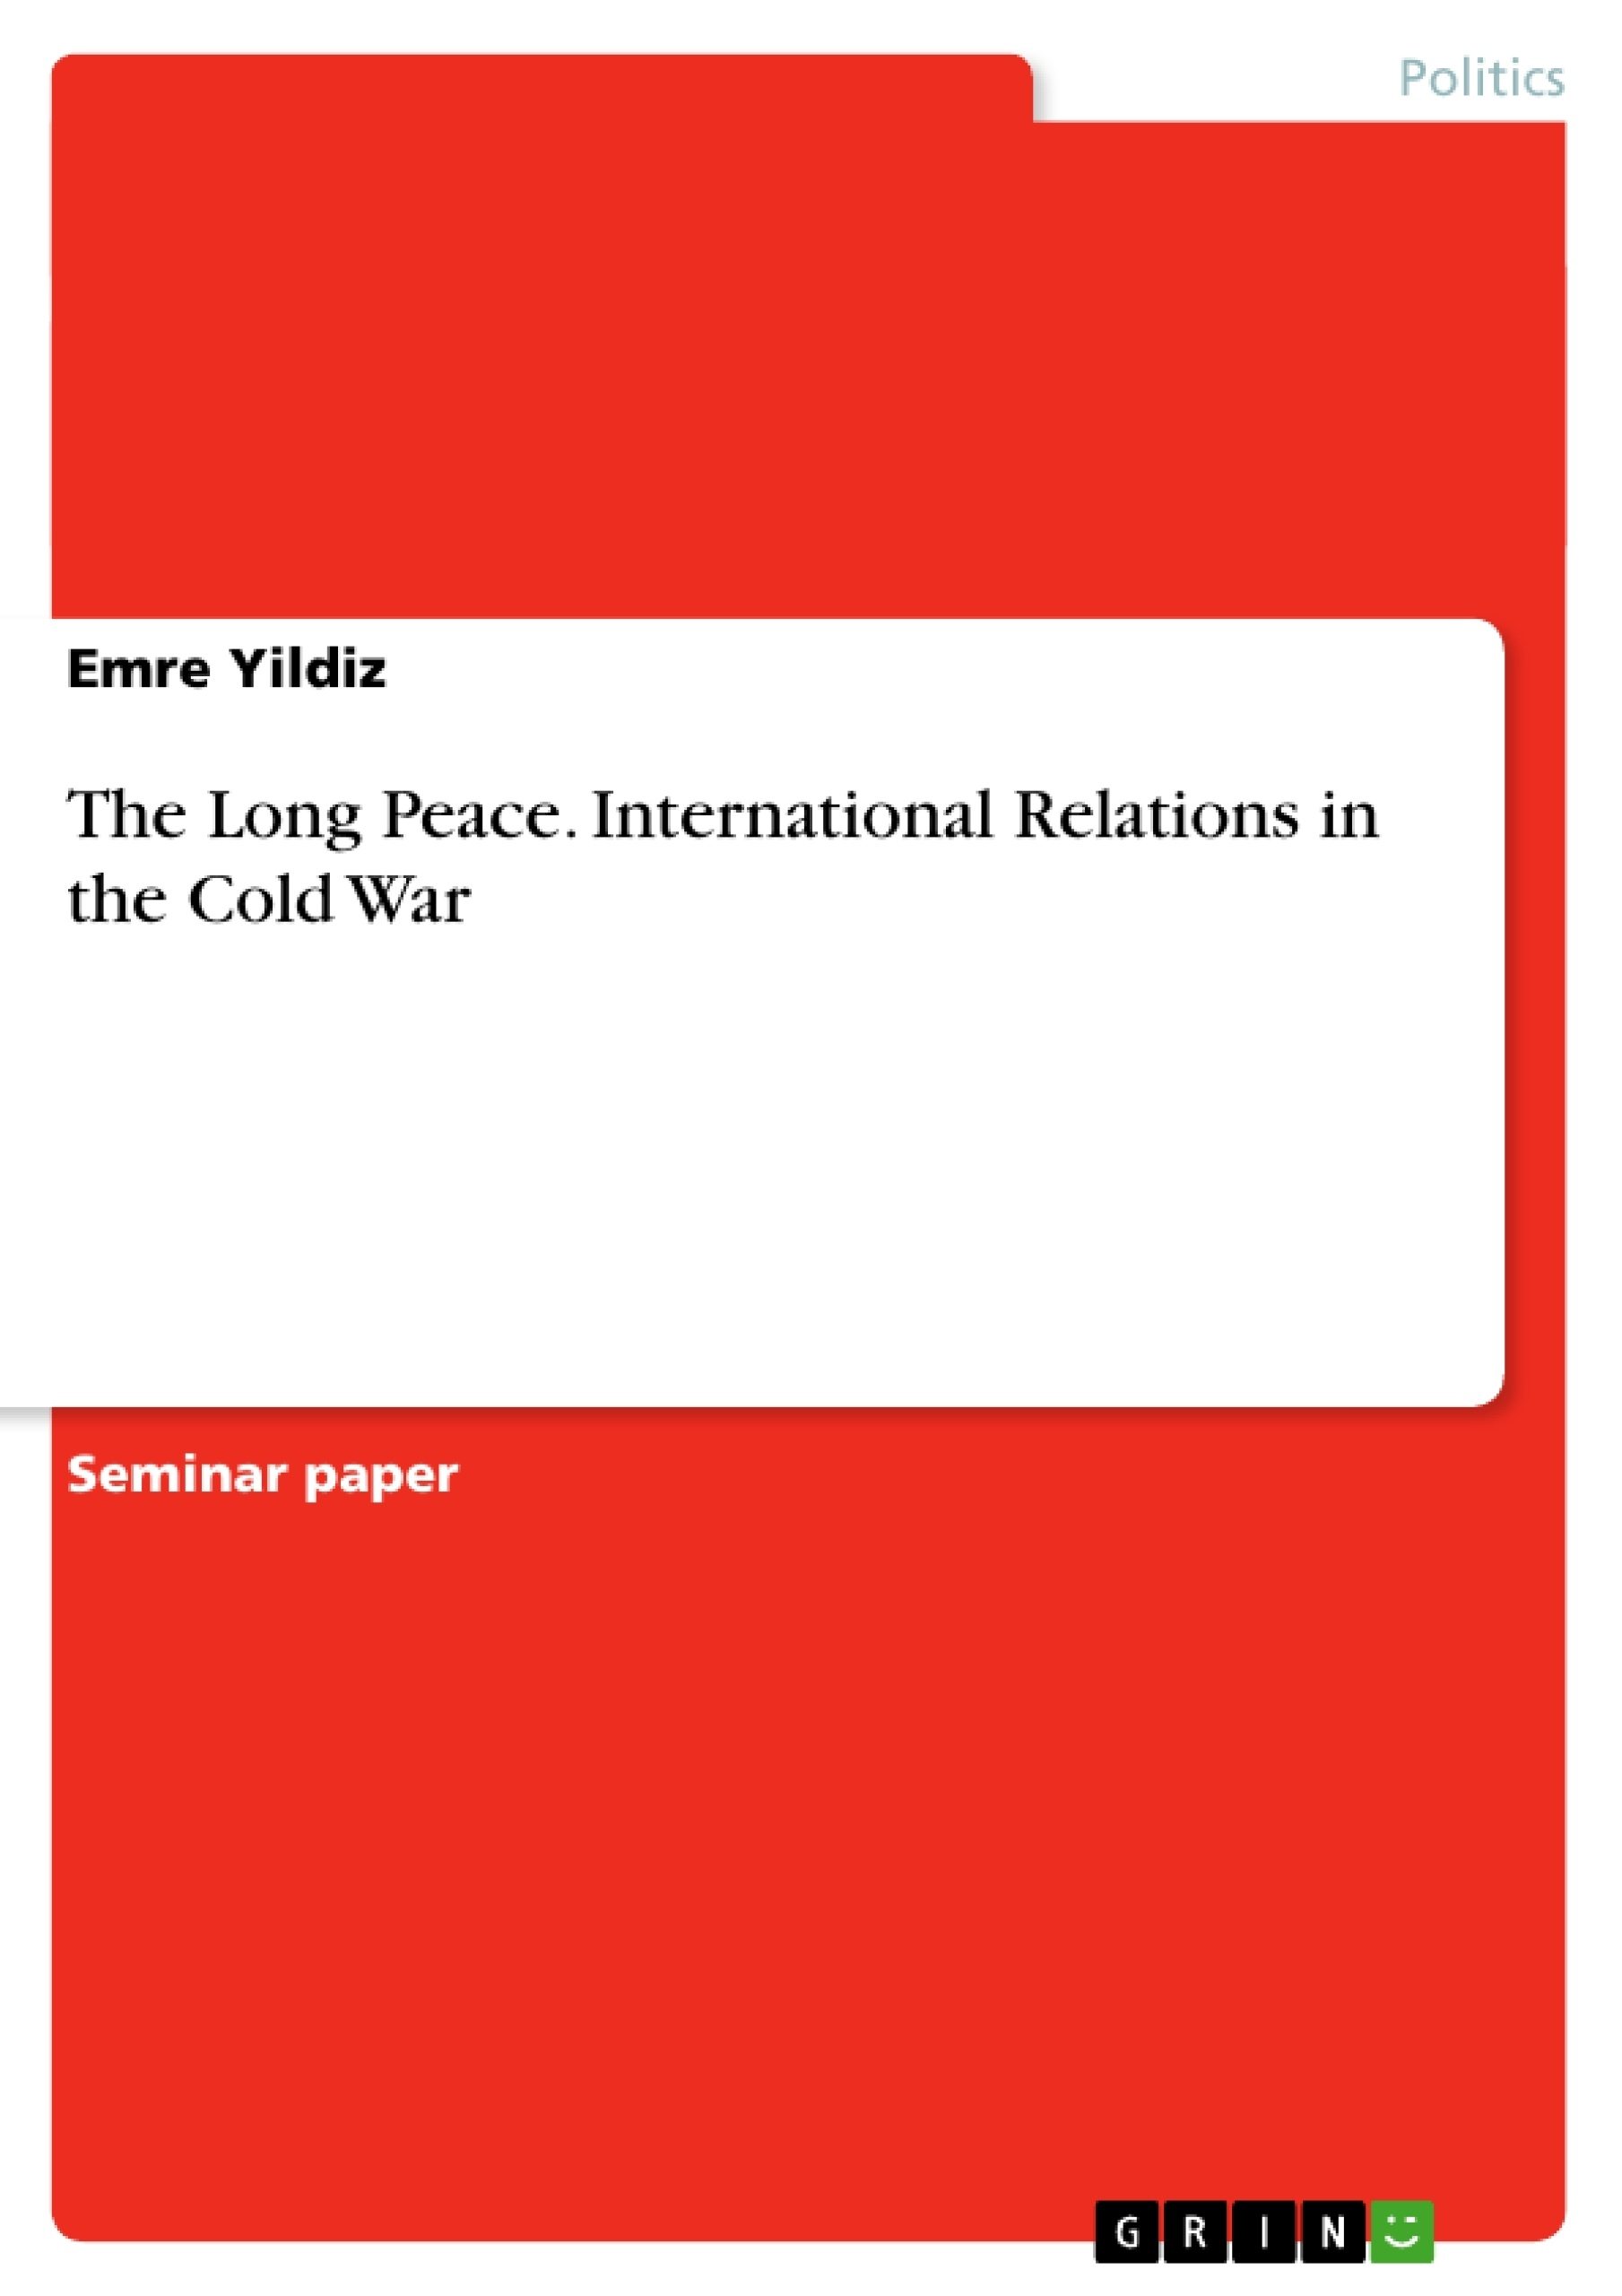 Title: The Long Peace. International Relations in the Cold War